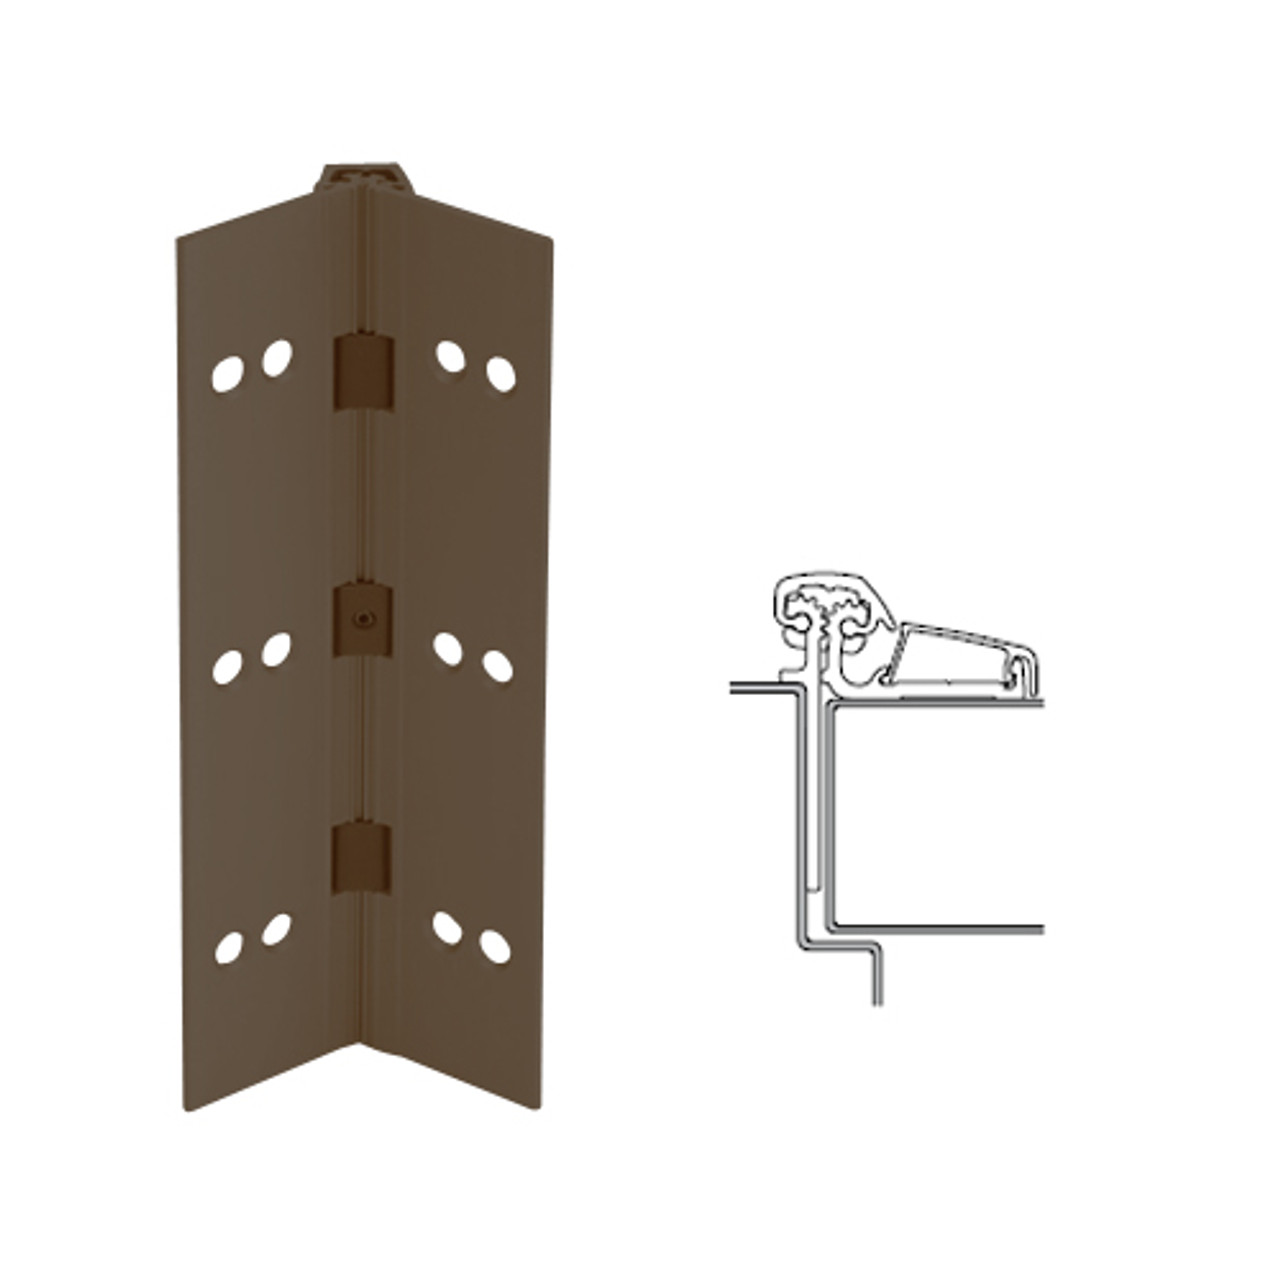 053XY-313AN-85-SECHM IVES Adjustable Half Surface Continuous Geared Hinges with Security Screws - Hex Pin Drive in Dark Bronze Anodized